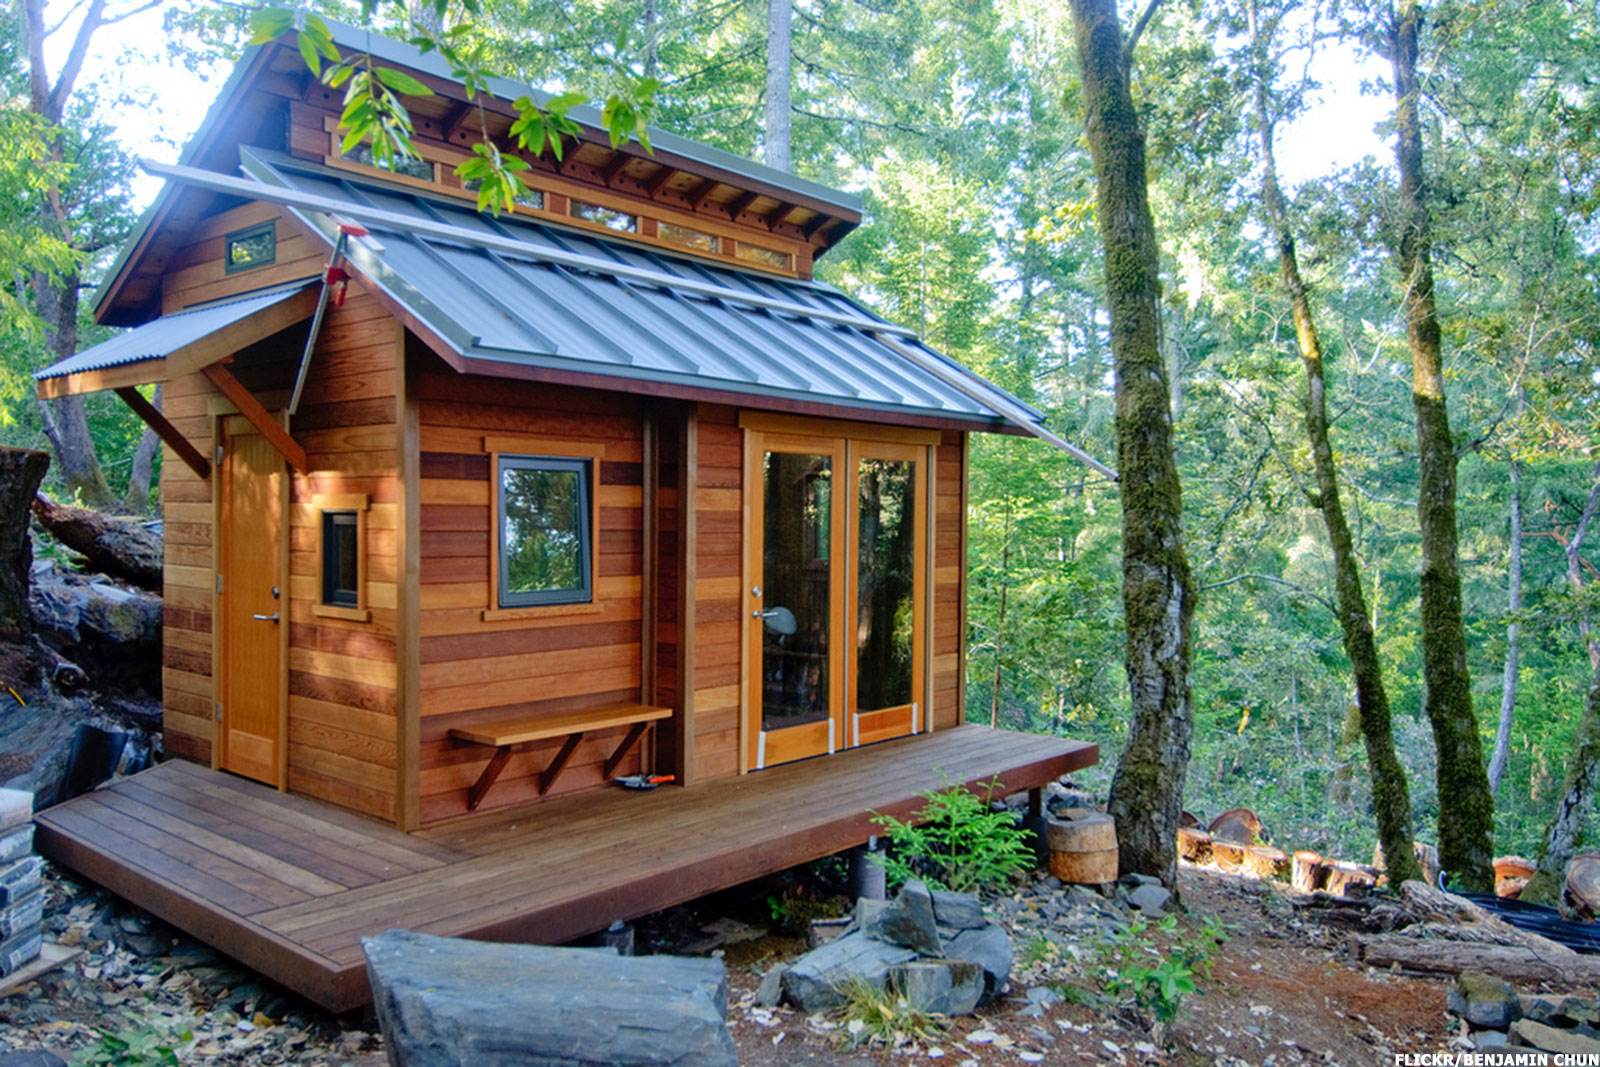 The Tiny Home Craze Is Now Becoming a Hip Vacation Movement